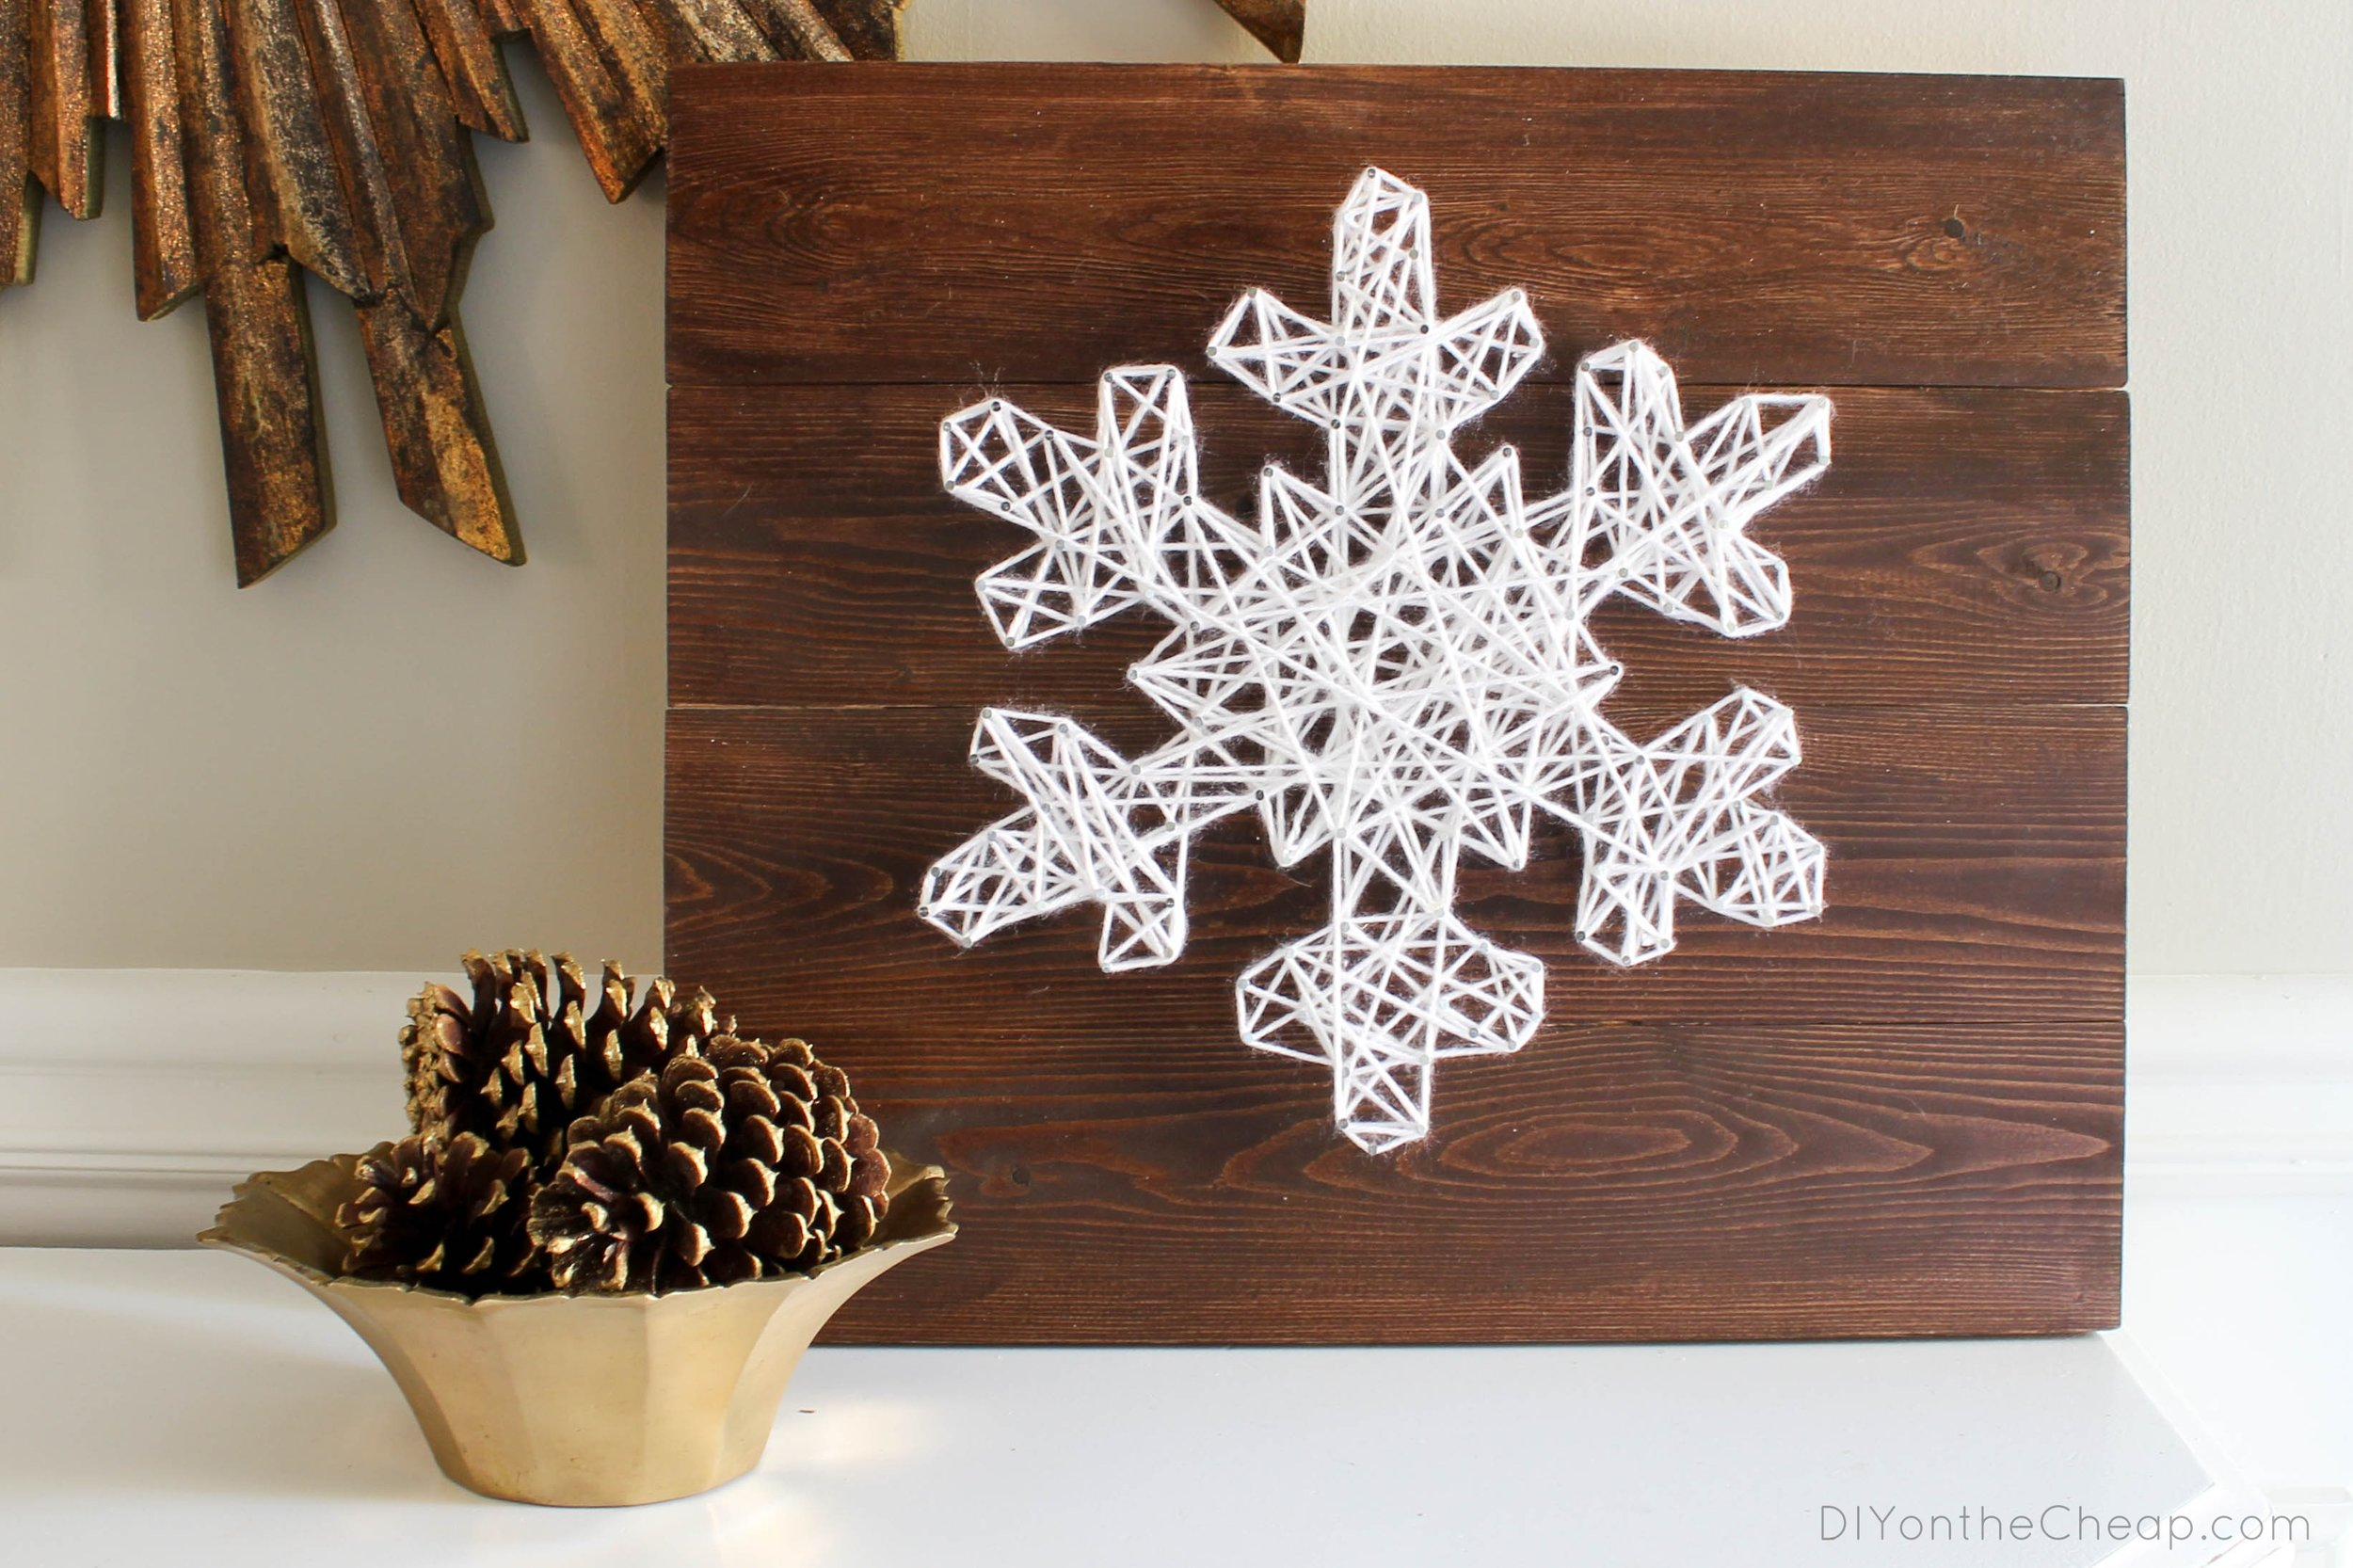 diy-snowflake-string-art-2a.jpg